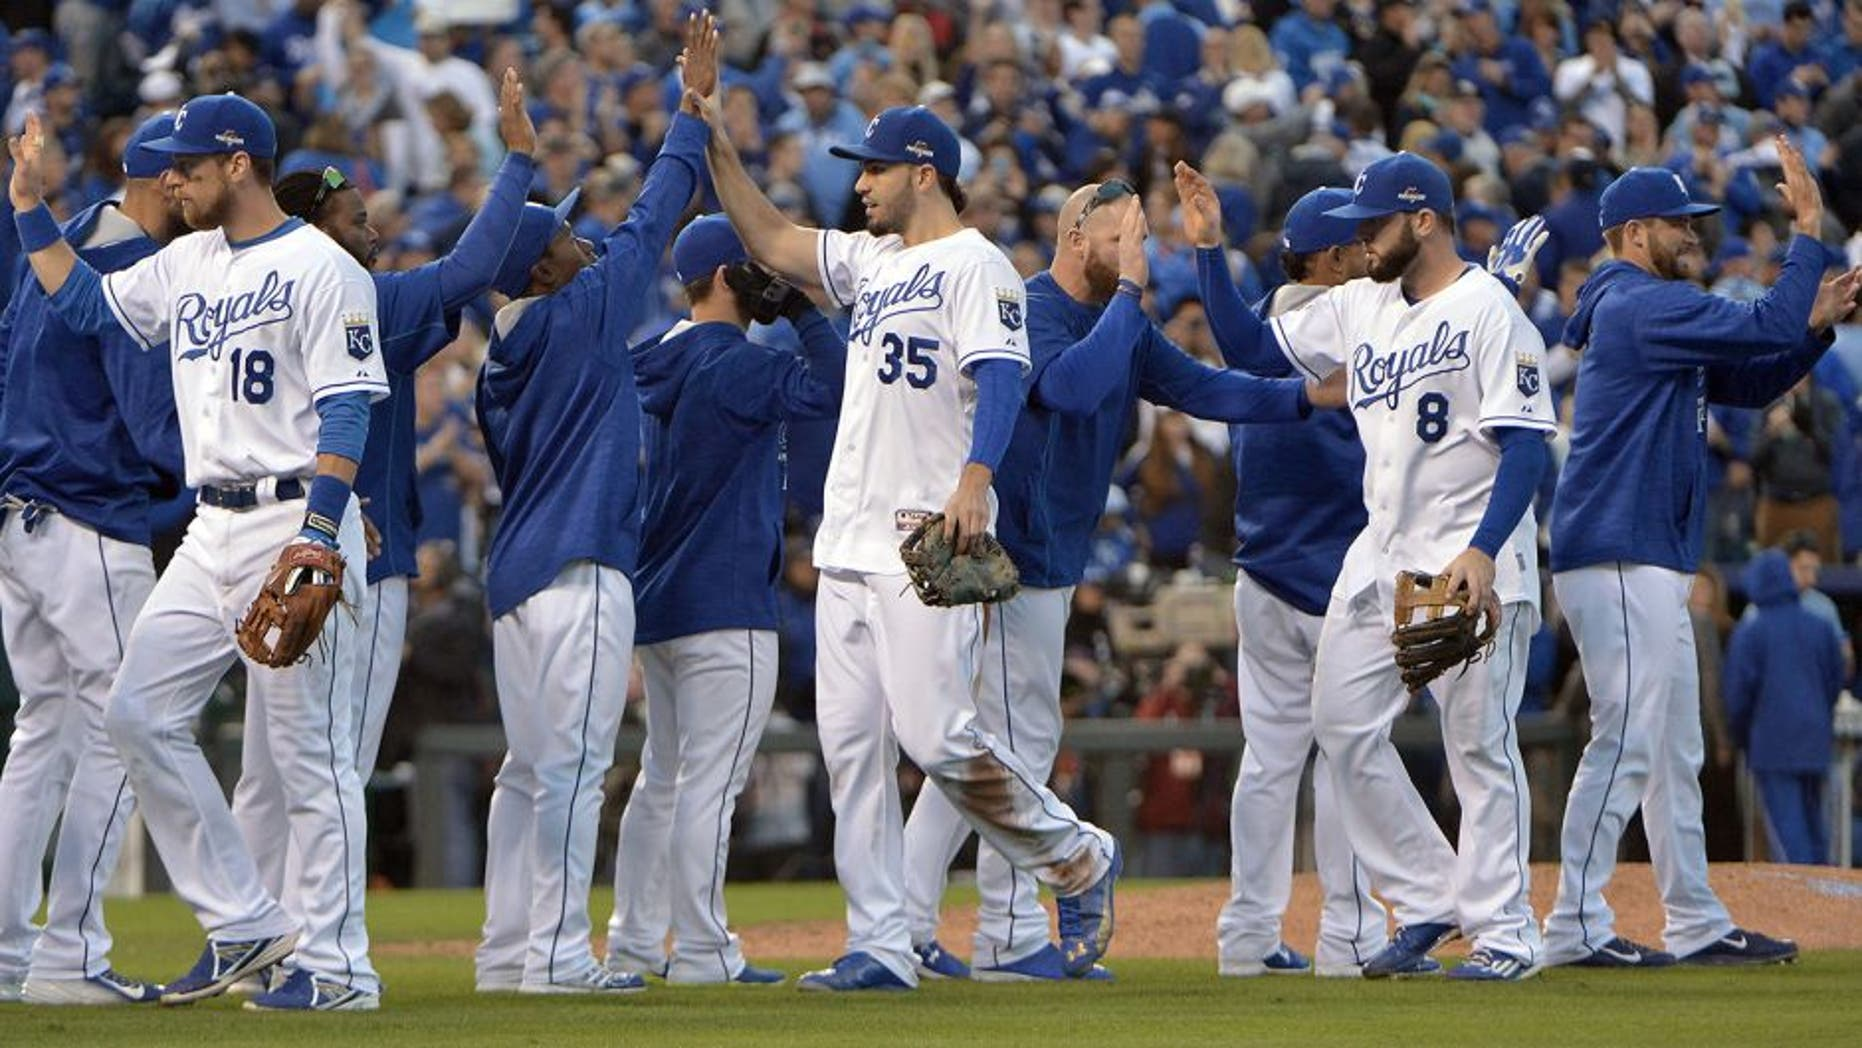 Oct 17, 2015; Kansas City, MO, USA; Kansas City Royals first baseman Eric Hosmer (35) celebrates with teammate after beating the Toronto Blue Jays in game two of the ALCS at Kauffman Stadium. Mandatory Credit: Denny Medley-USA TODAY Sports